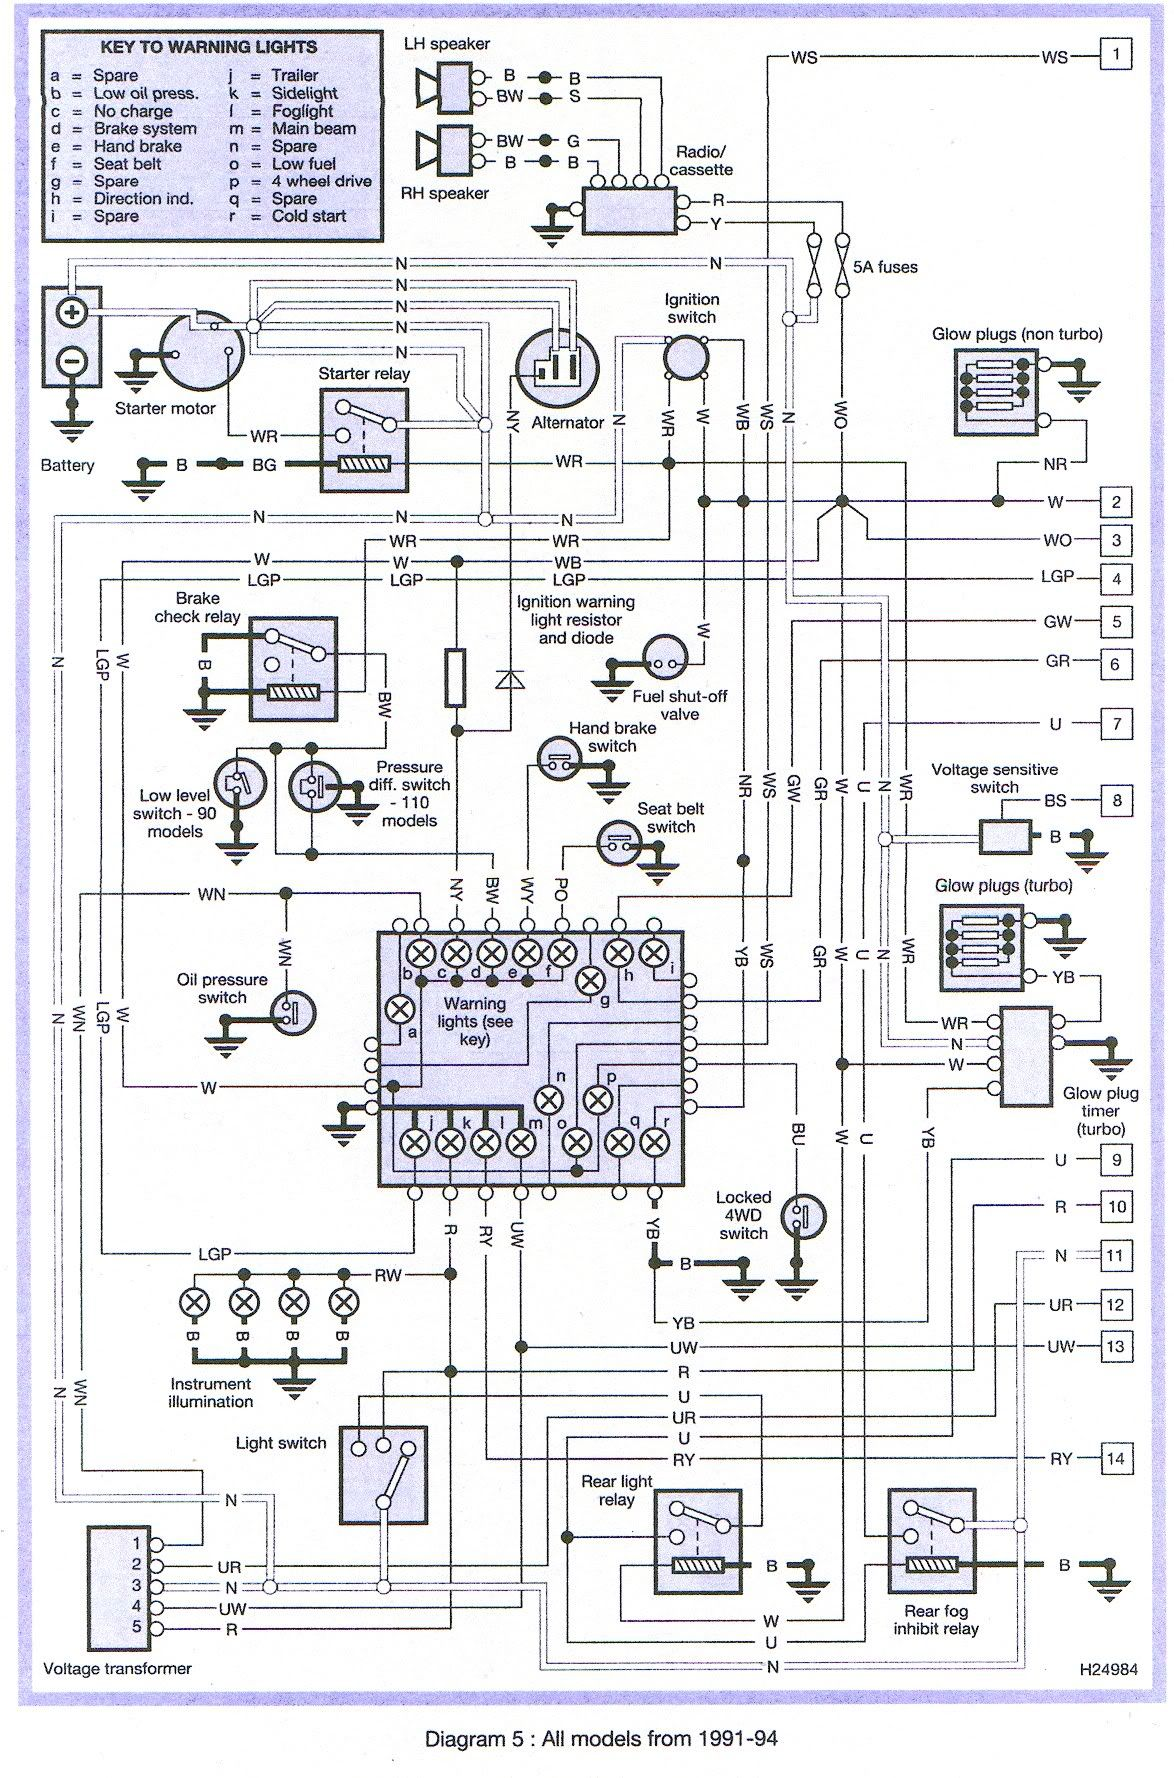 manual electrical wiring and circuits diagrams body repair manual rover 75 wiring diagram and body electrical system [ 1174 x 1778 Pixel ]